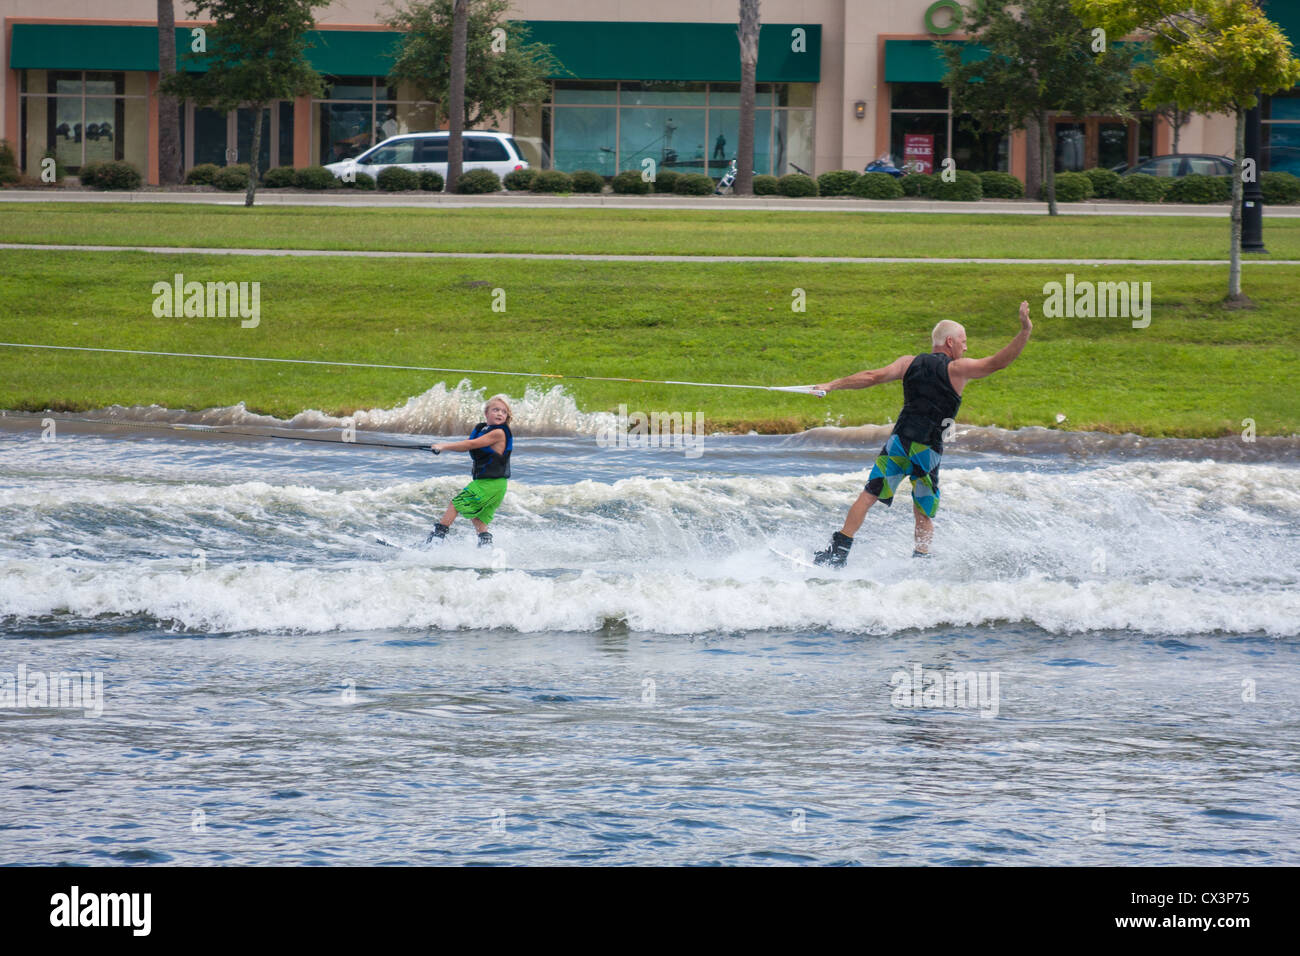 Wakeboard Demonstrations On The Lake - Stock Image